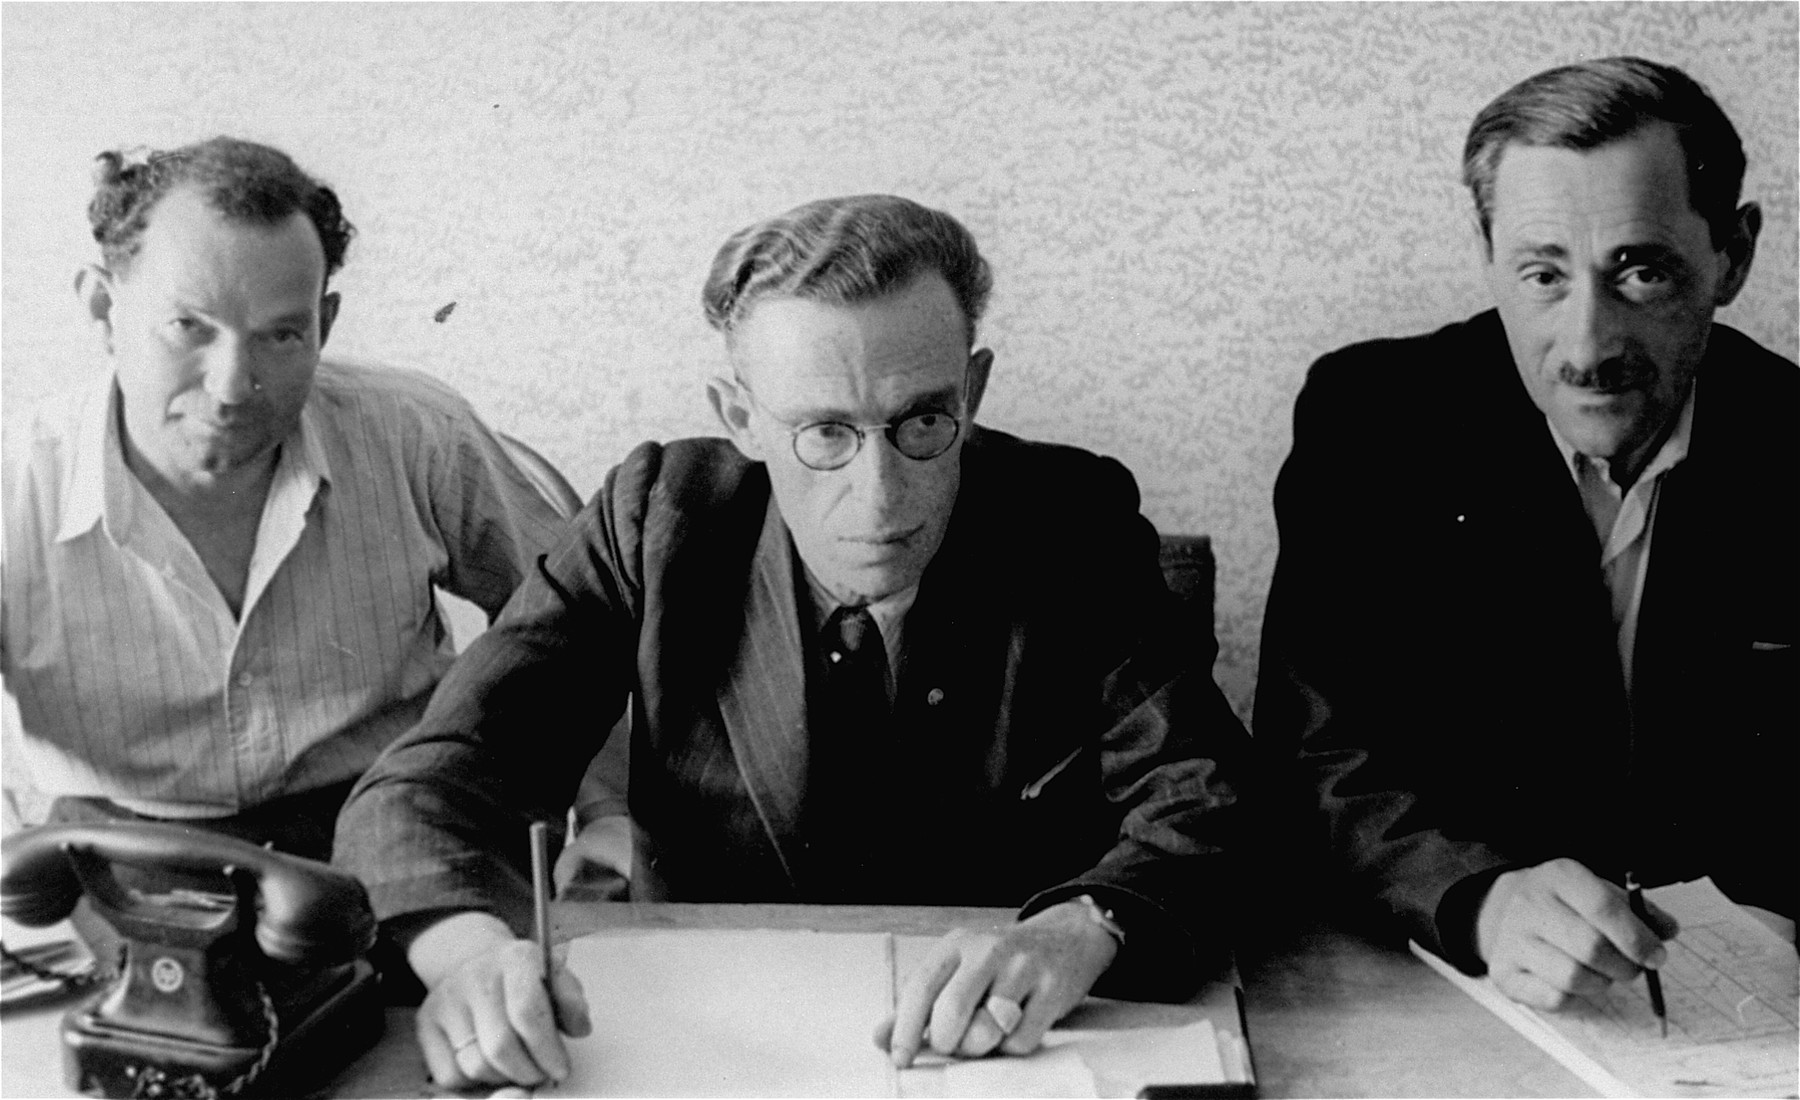 Close-up portrait of three administrators in an office at an unidentified displaced persons camp in Germany.